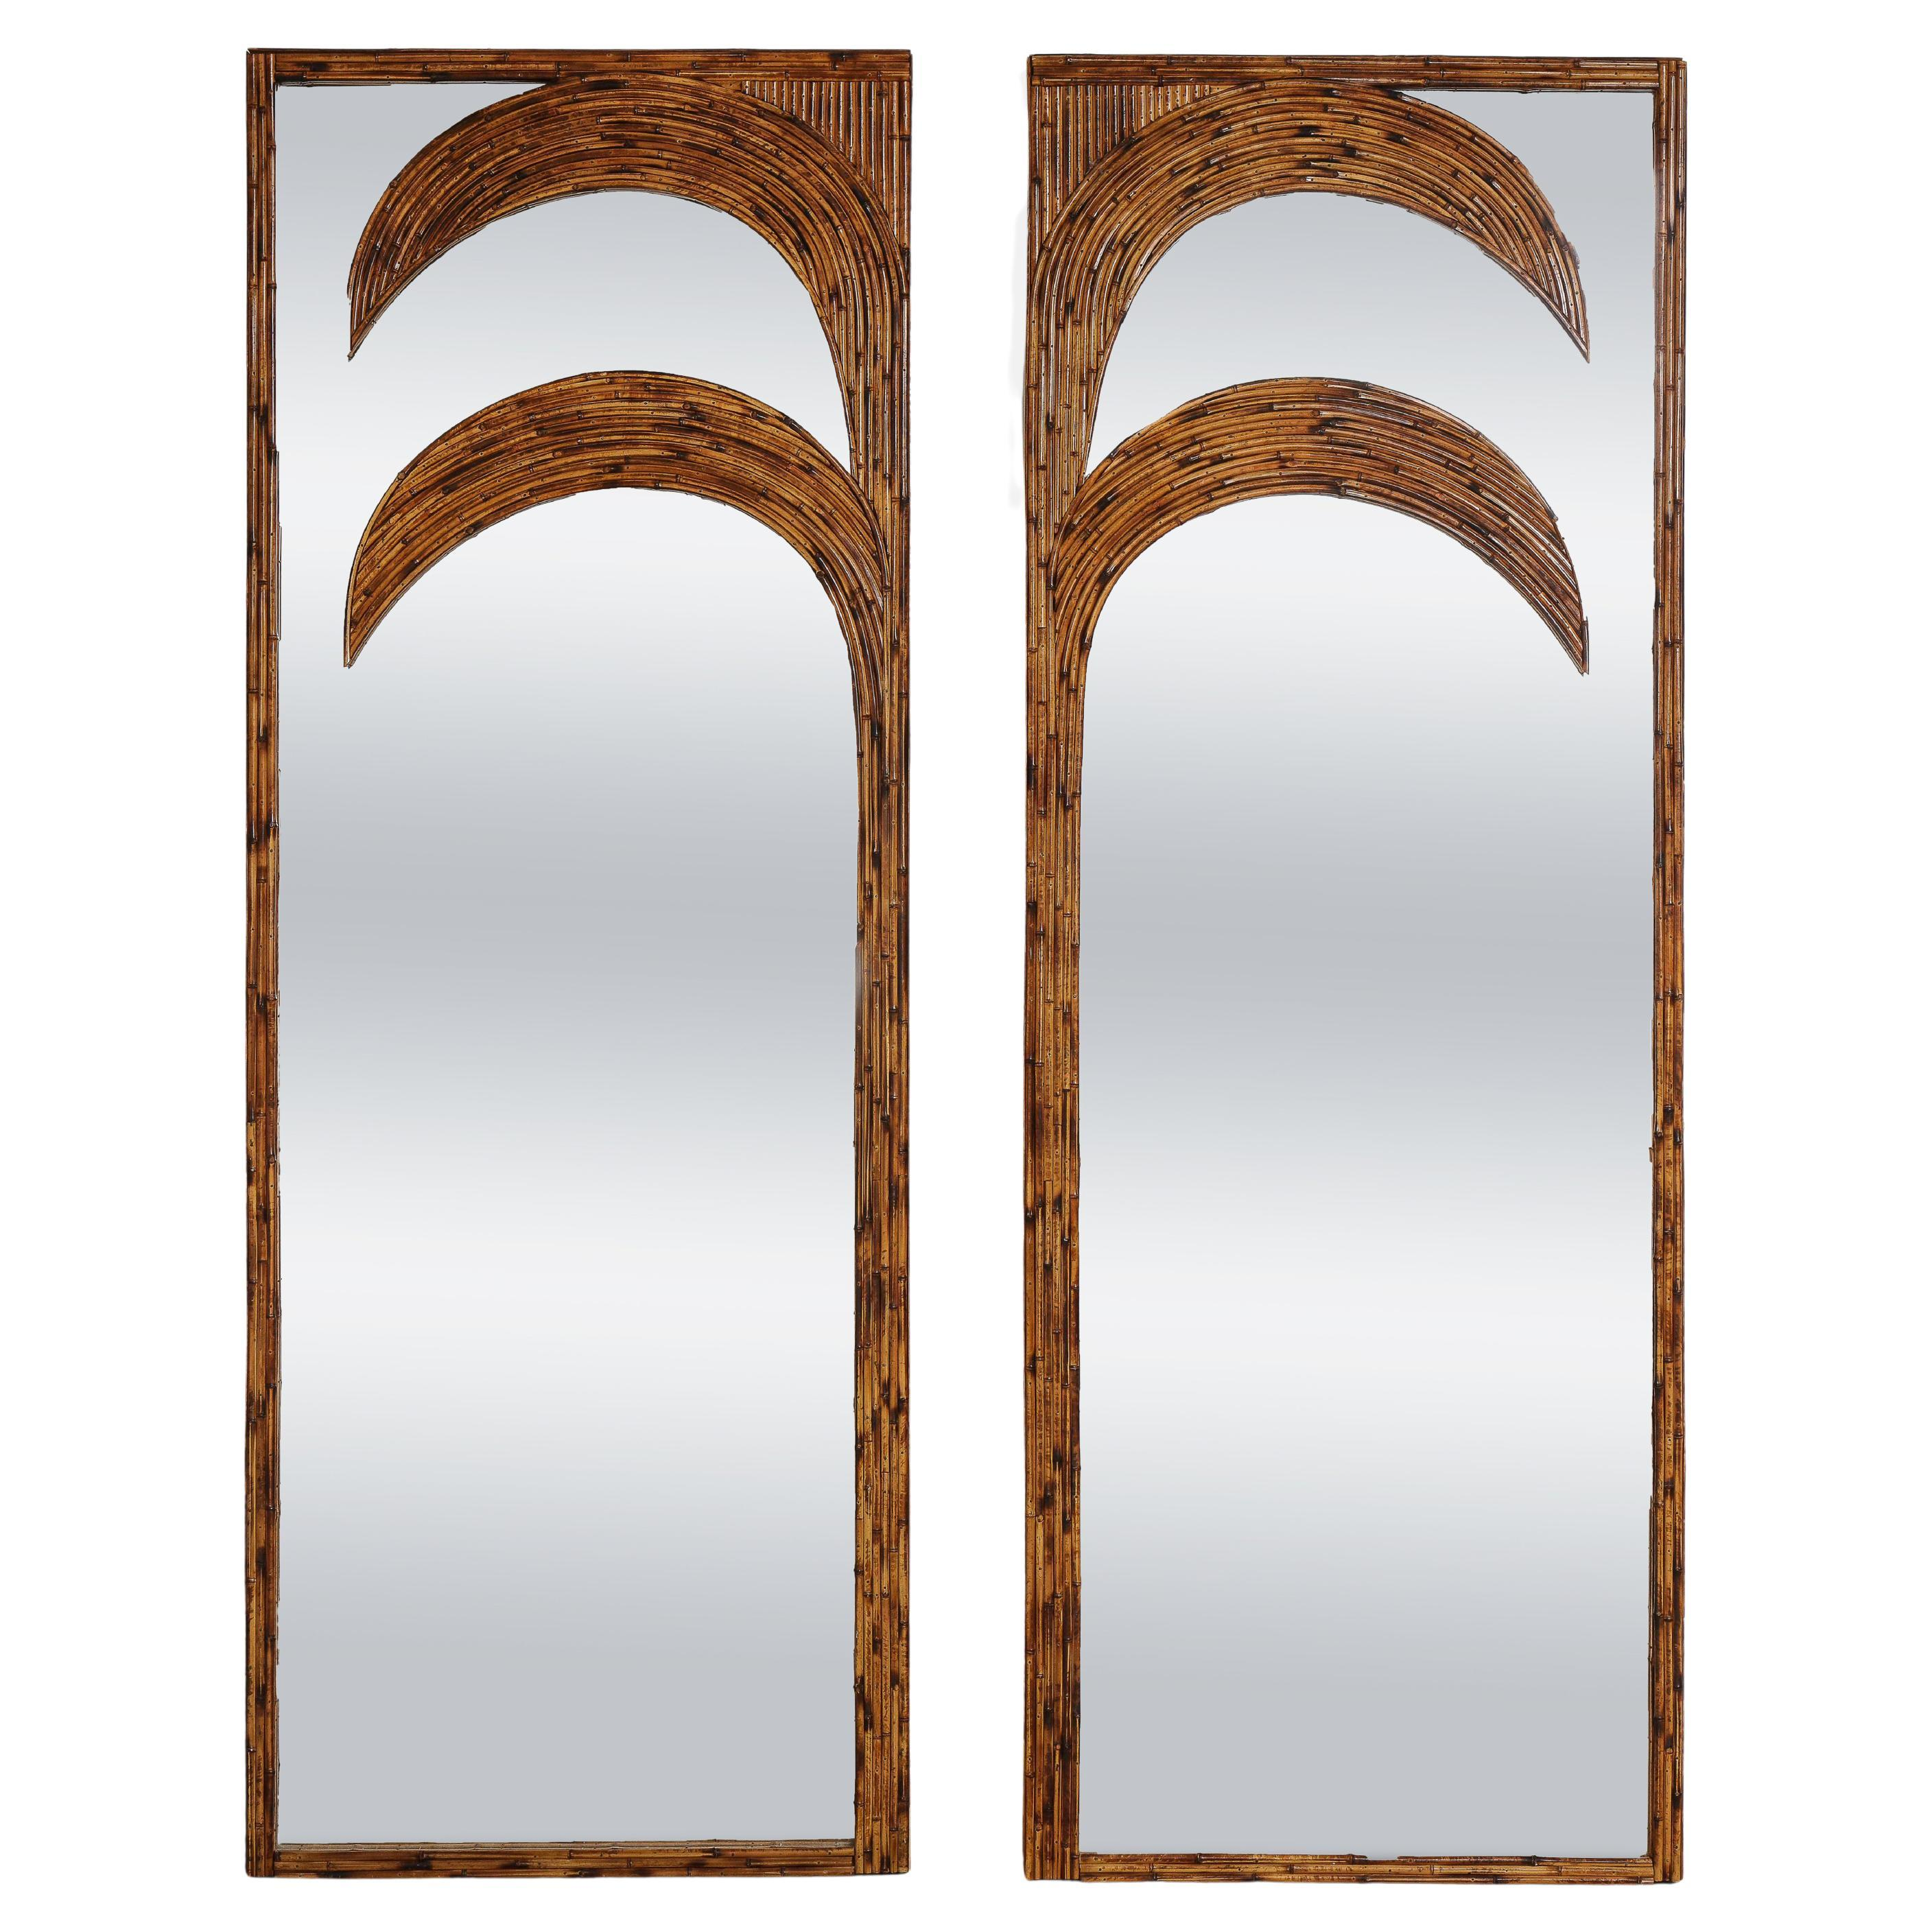 Vivai del Sud Pair of Standing Bamboo Palm Tree Mirrors, Italy, 1970s